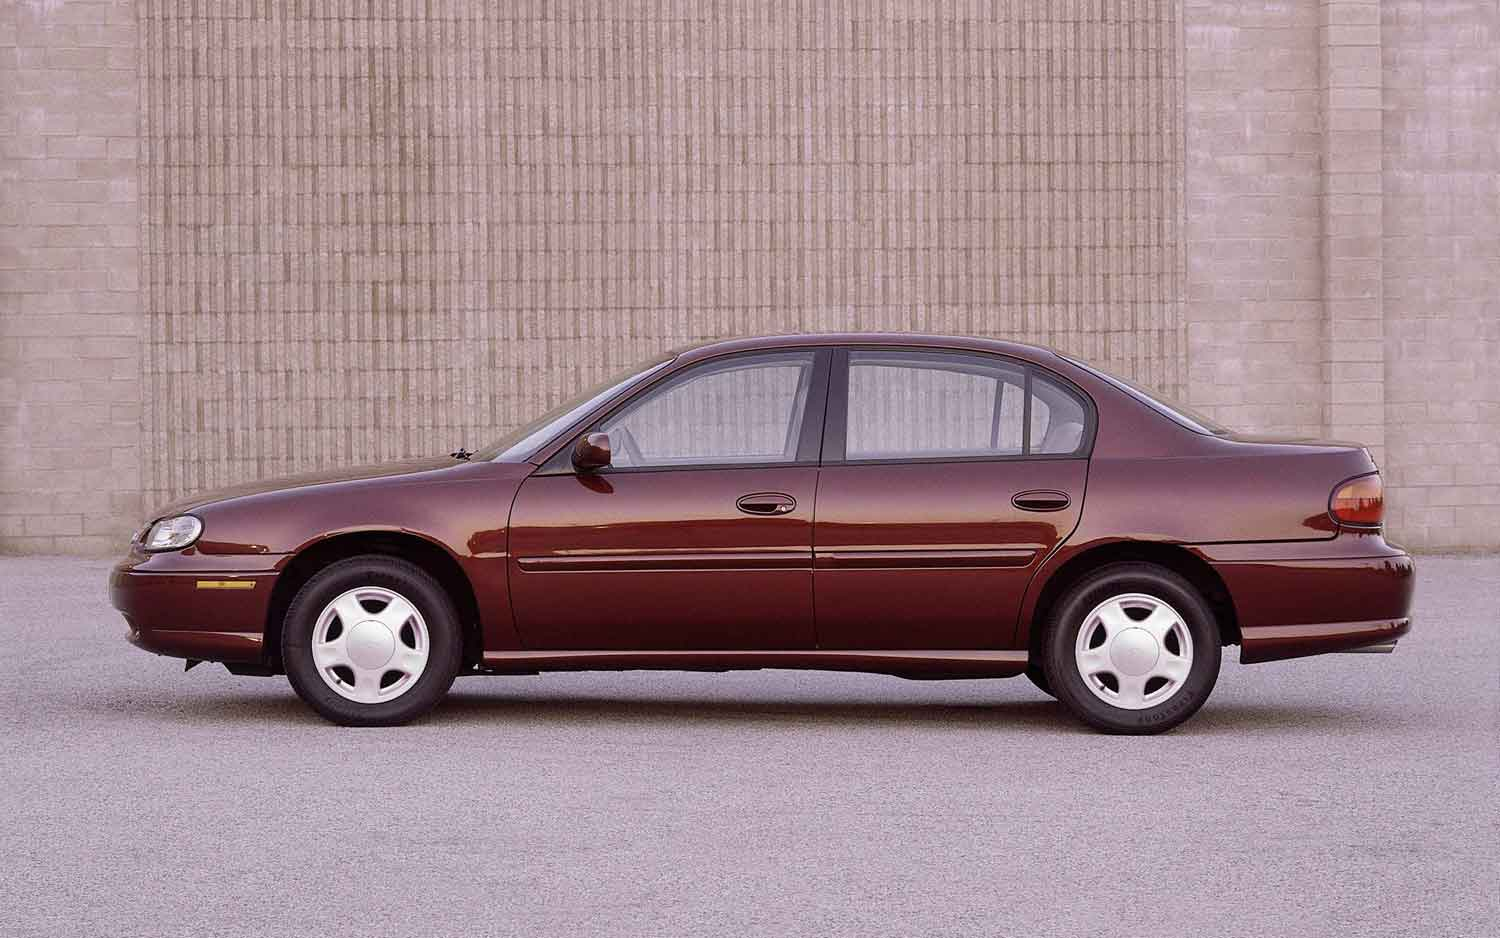 2000 Chevrolet Malibu Together With 2004 Chevy Venture Wiring Diagram